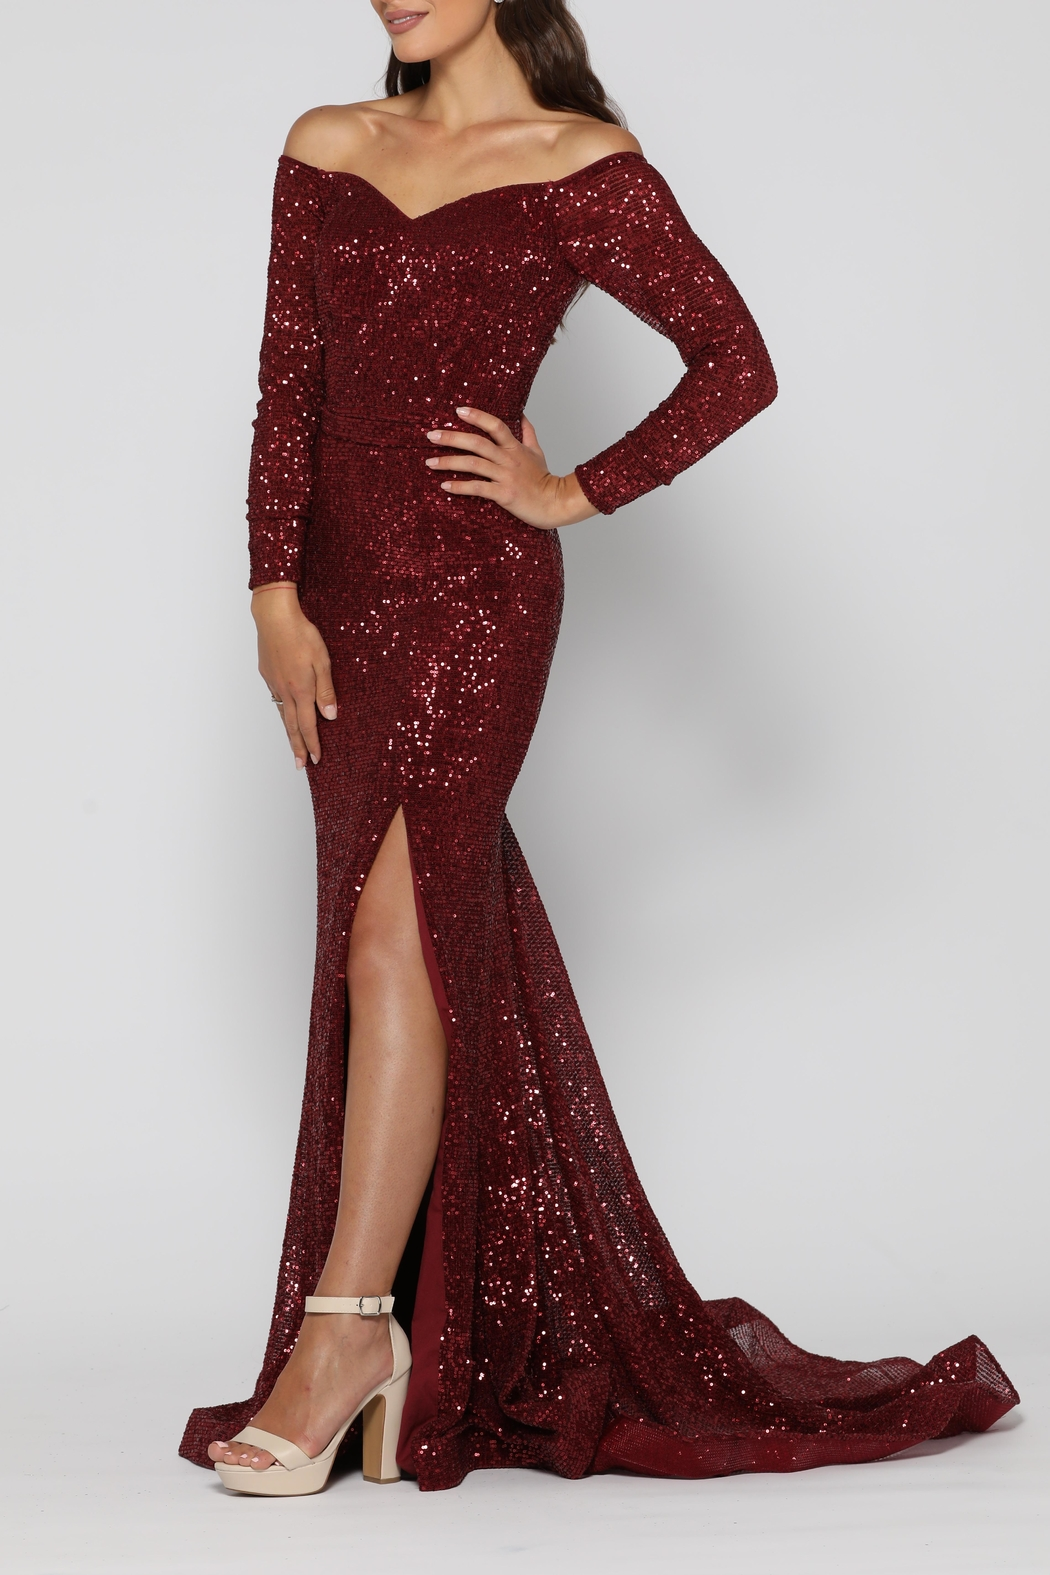 YSS the Label Veronica Gown Wine - Front Full Image